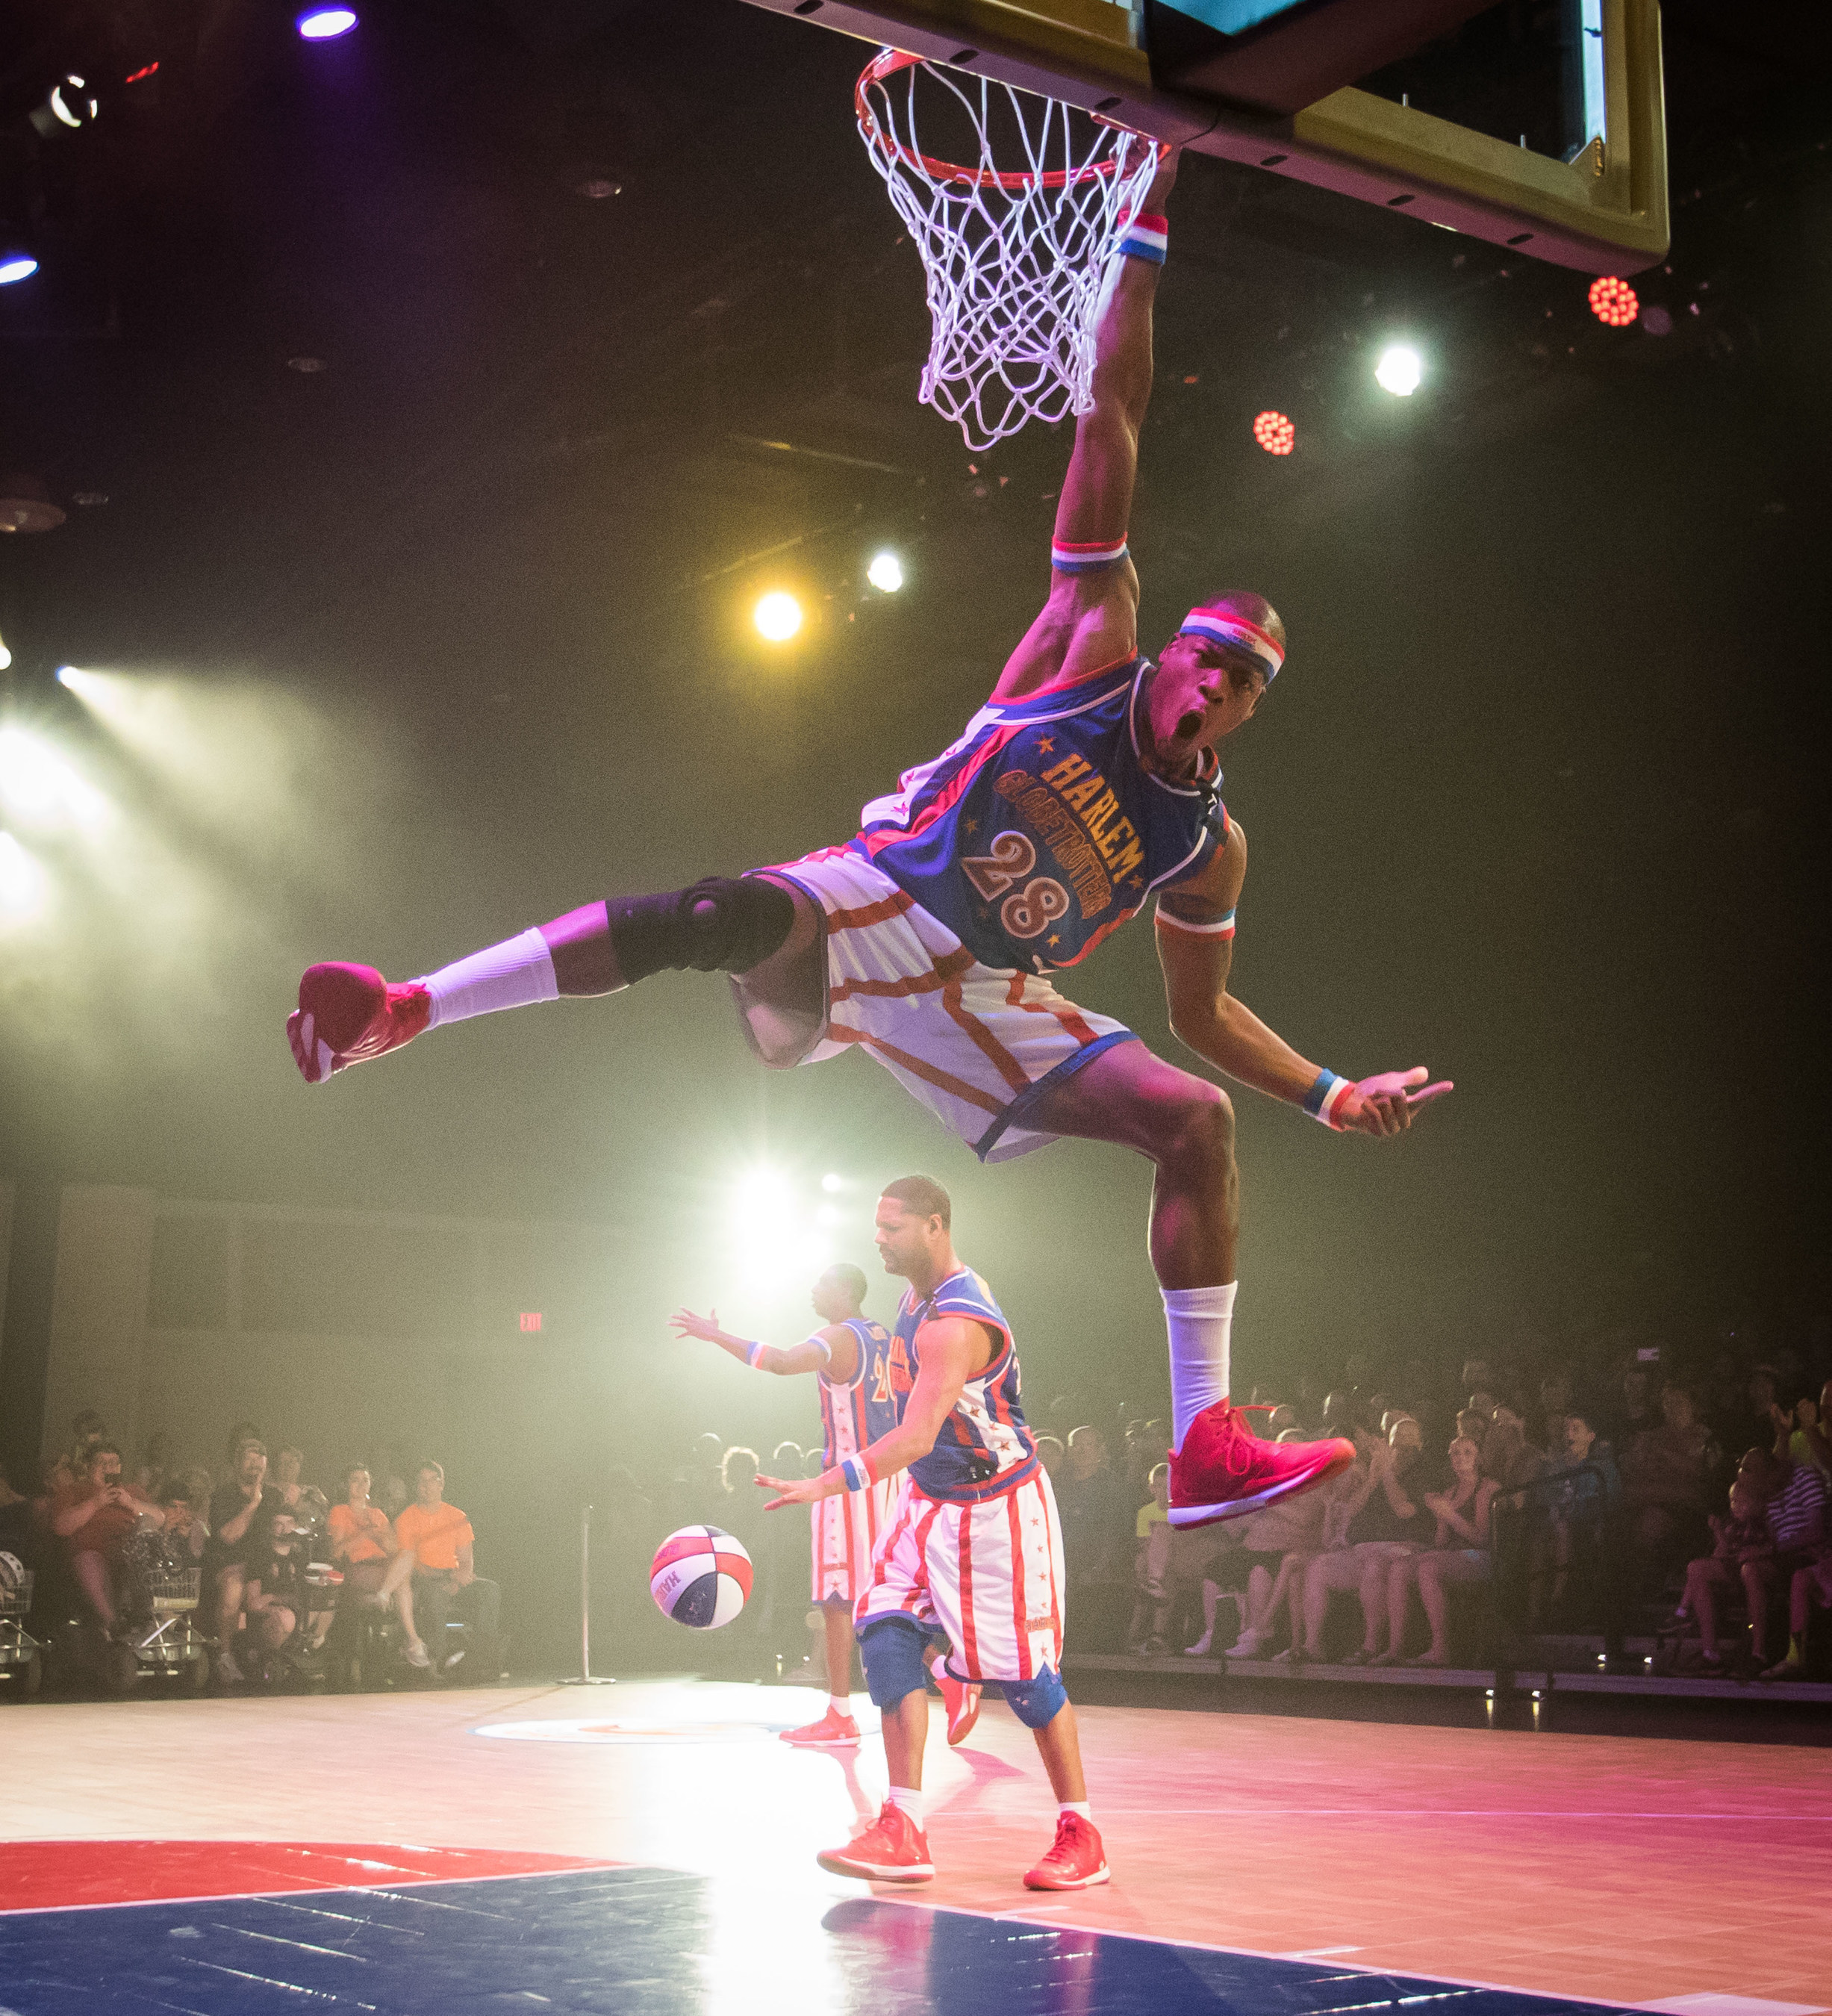 The Harlem Globetrotters demonstrate their trademark basketball wizardry in The Globetrotter Experience, as they tip off their six-week, first-ever extended run at Silver Dollar City in Branson, Missouri.